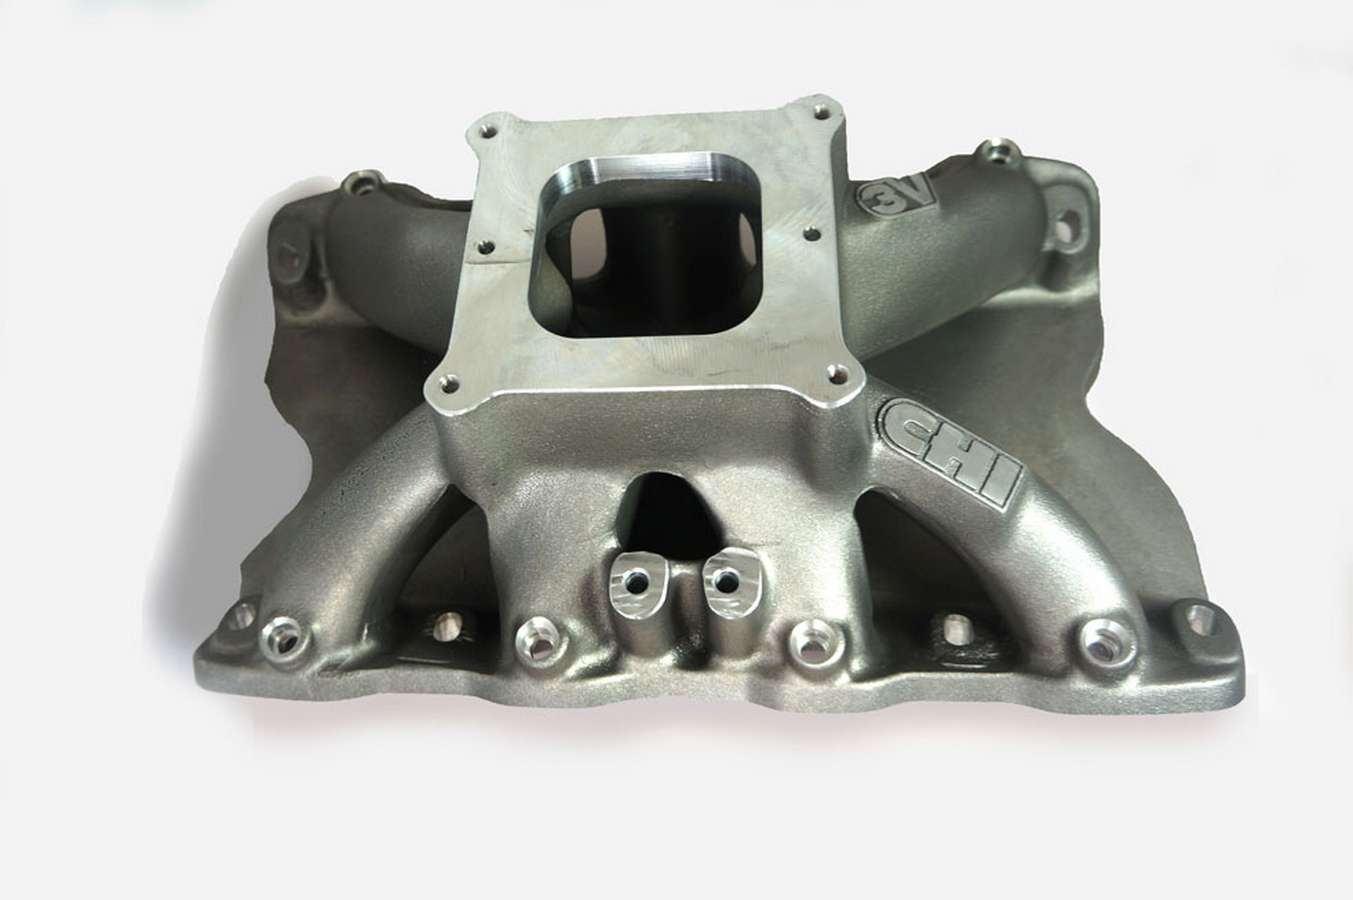 Cylinder Head Innovations INT3V225H9.2C Intake Manifold, 3V, Square Bore, 9.200 in Deck Height, Aluminum, Natural, Ford Cleveland / Modified, Each